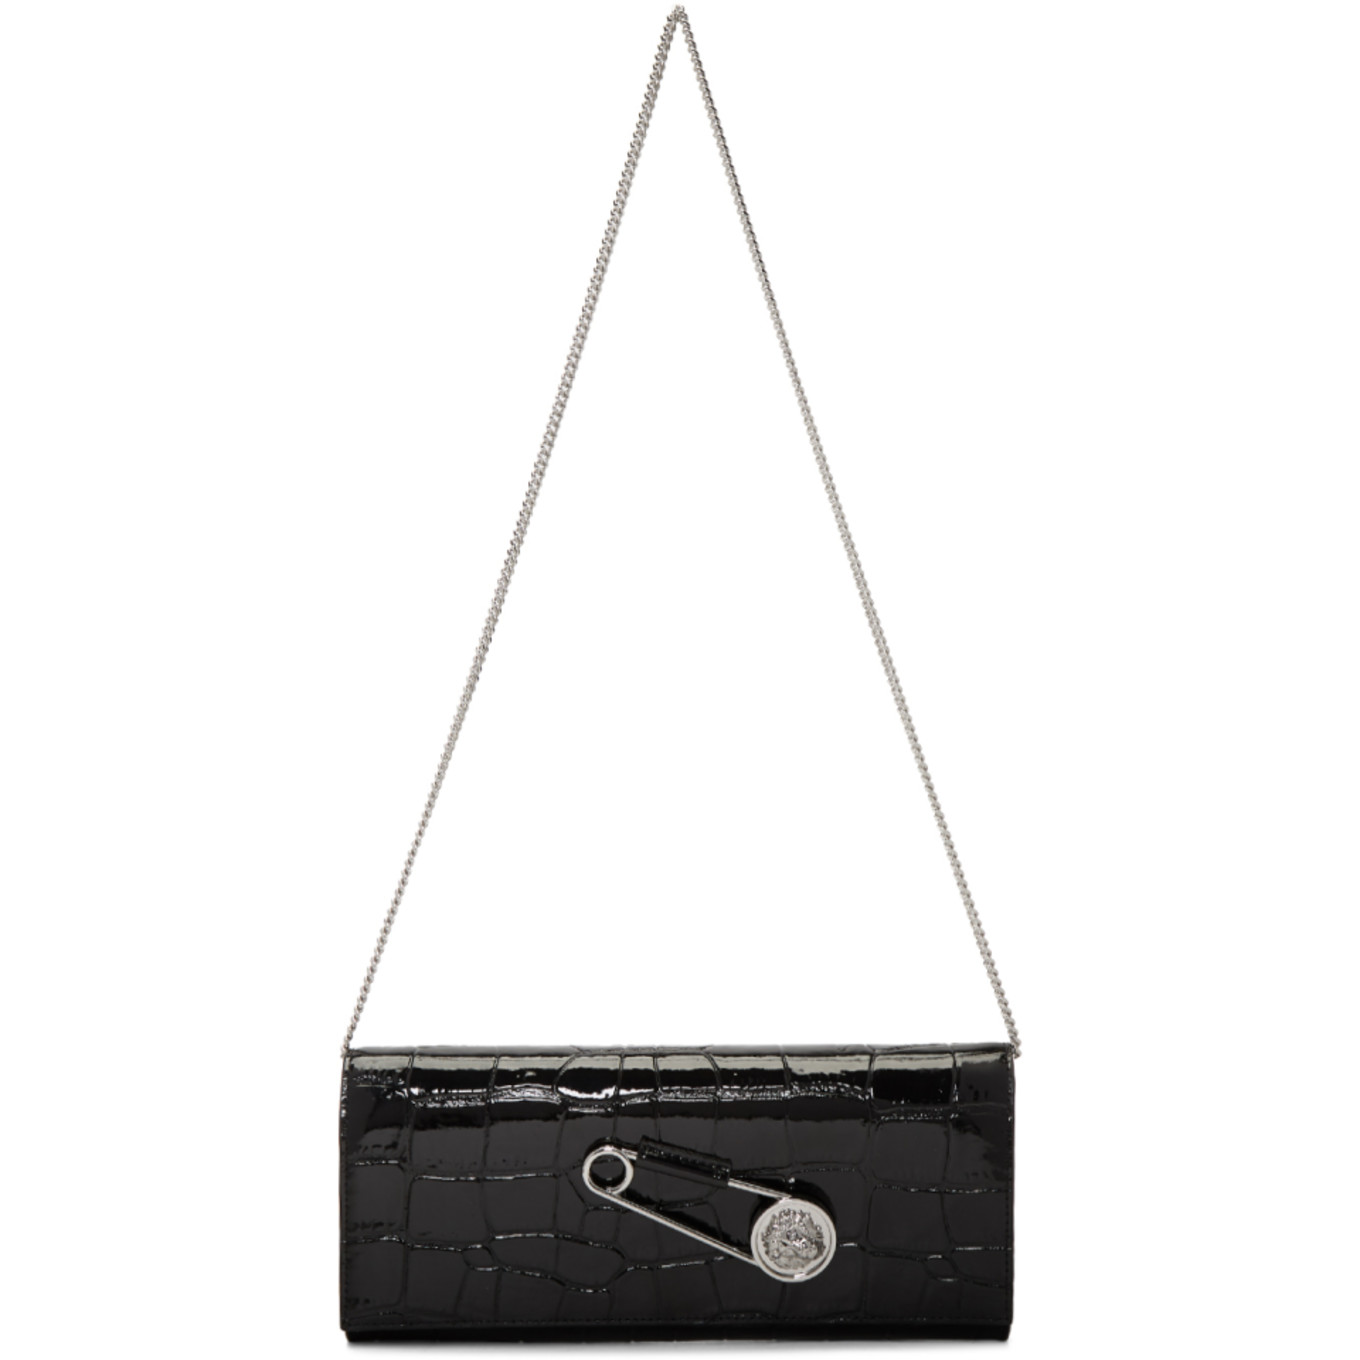 Black Croc Oversized Safety Pin Clutch by Versus